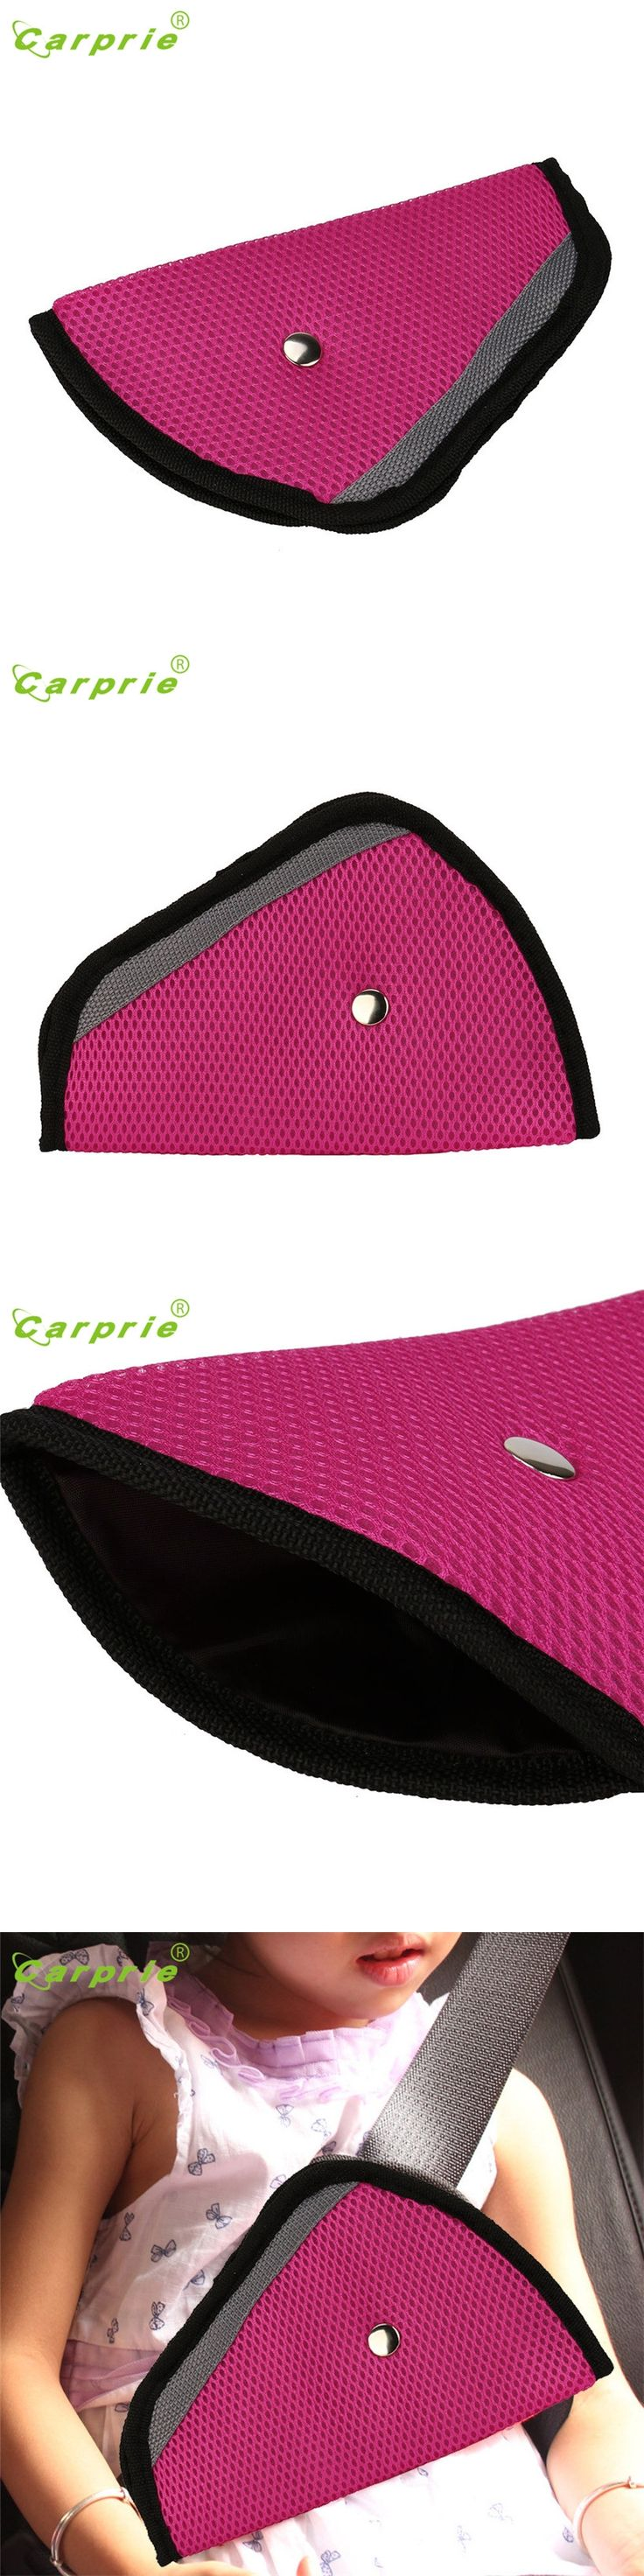 Dropship Hot Selling Baby Kids Car Safety Cover Strap Adjuster Pad Protect Seat Belt Clip Hot Pink Gift Aug 15